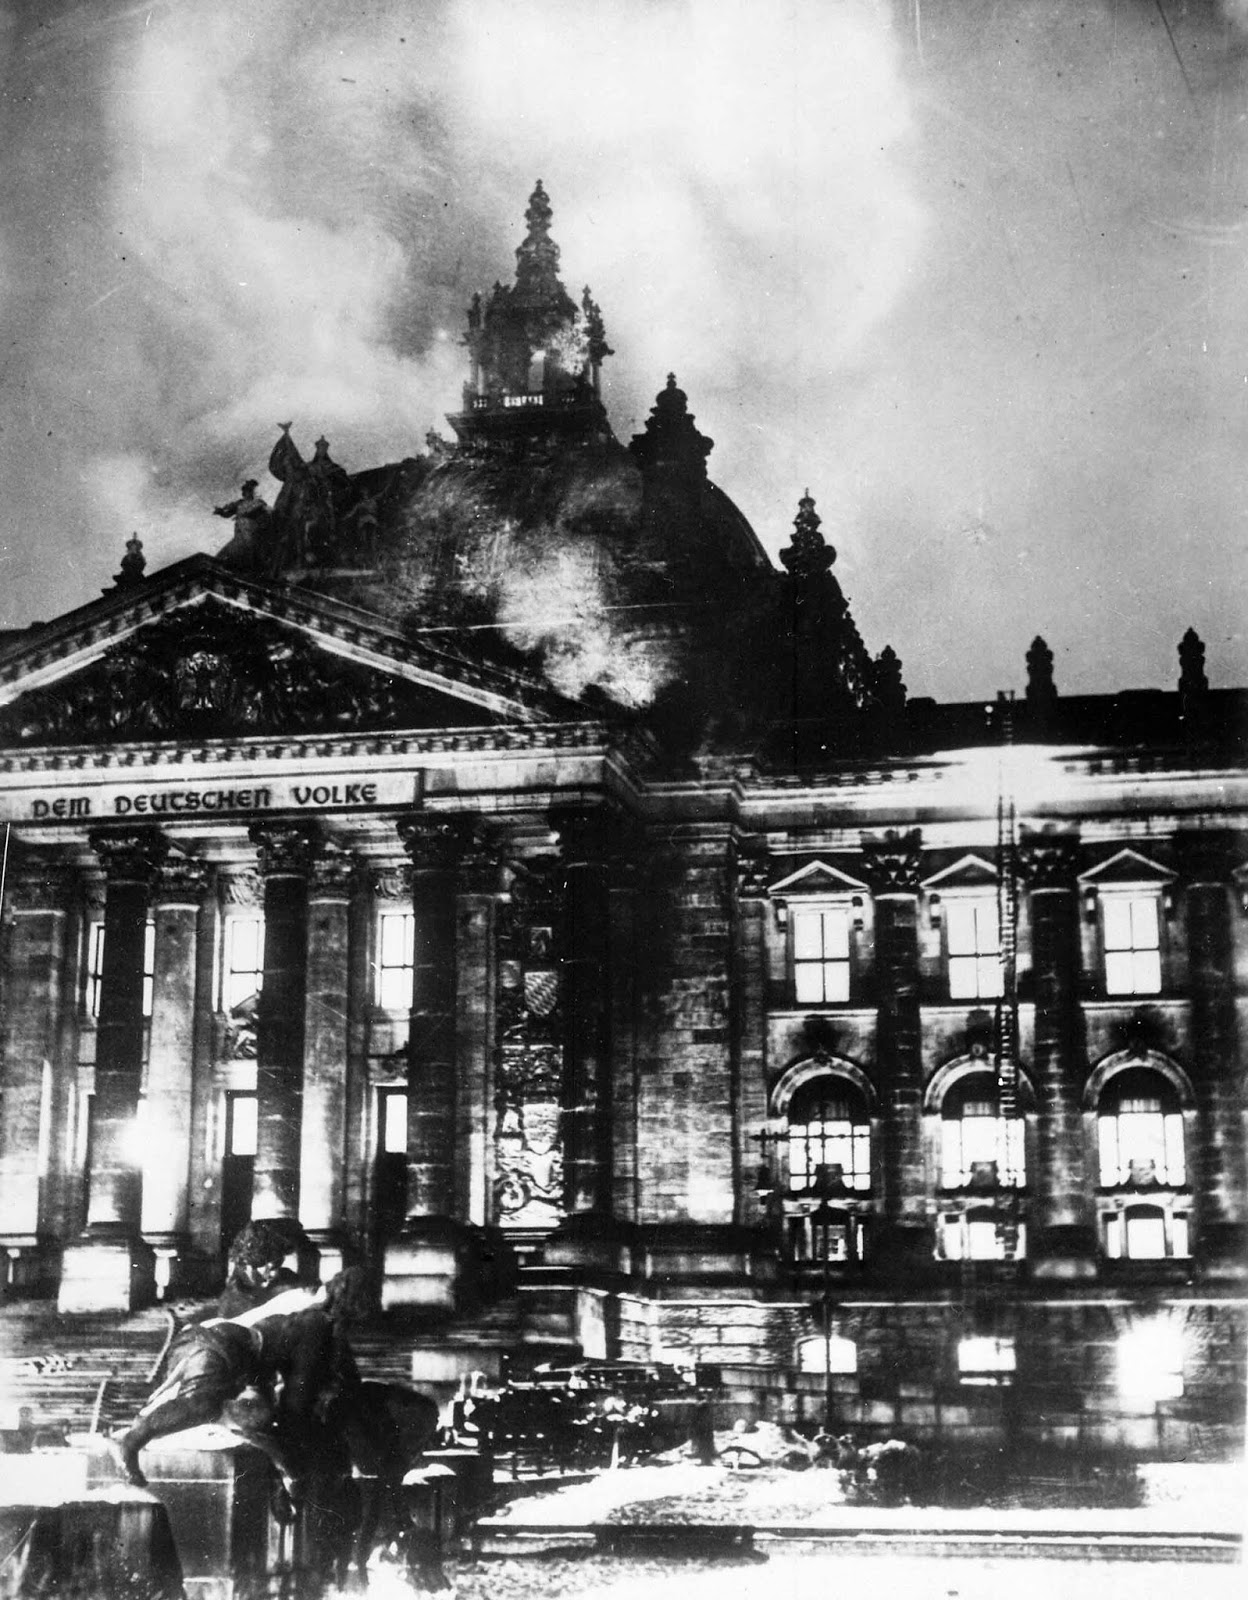 Reichstag_fire_1933 How to book a visit to the Reichstag dome in Berlin